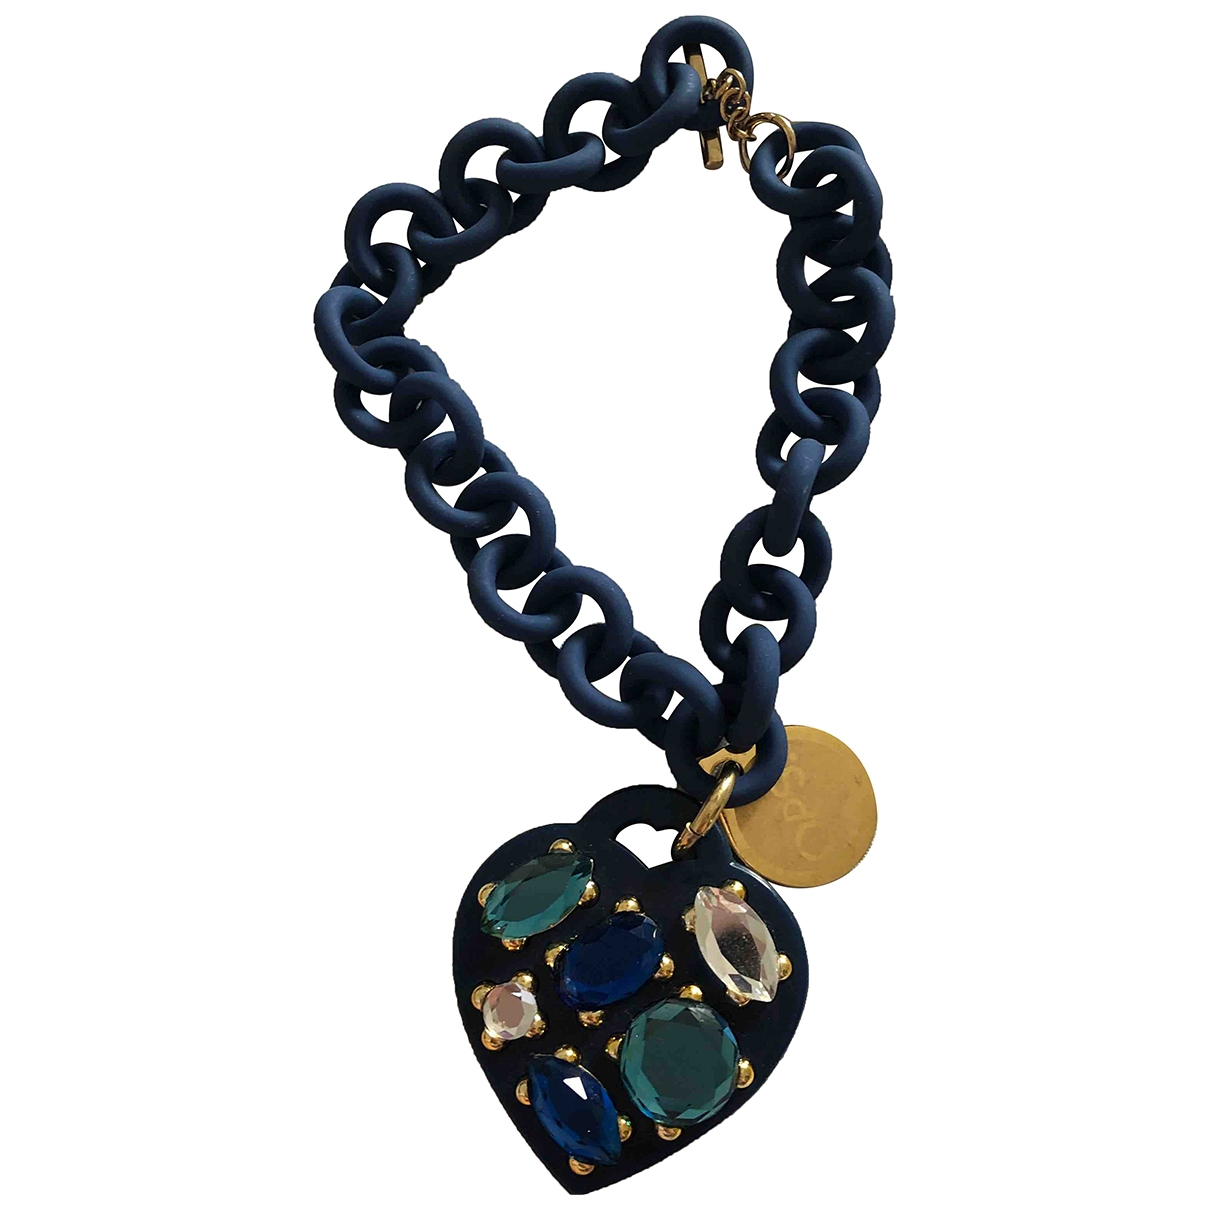 Non Signe / Unsigned Motifs Coeurs Armband in  Blau Kunststoff